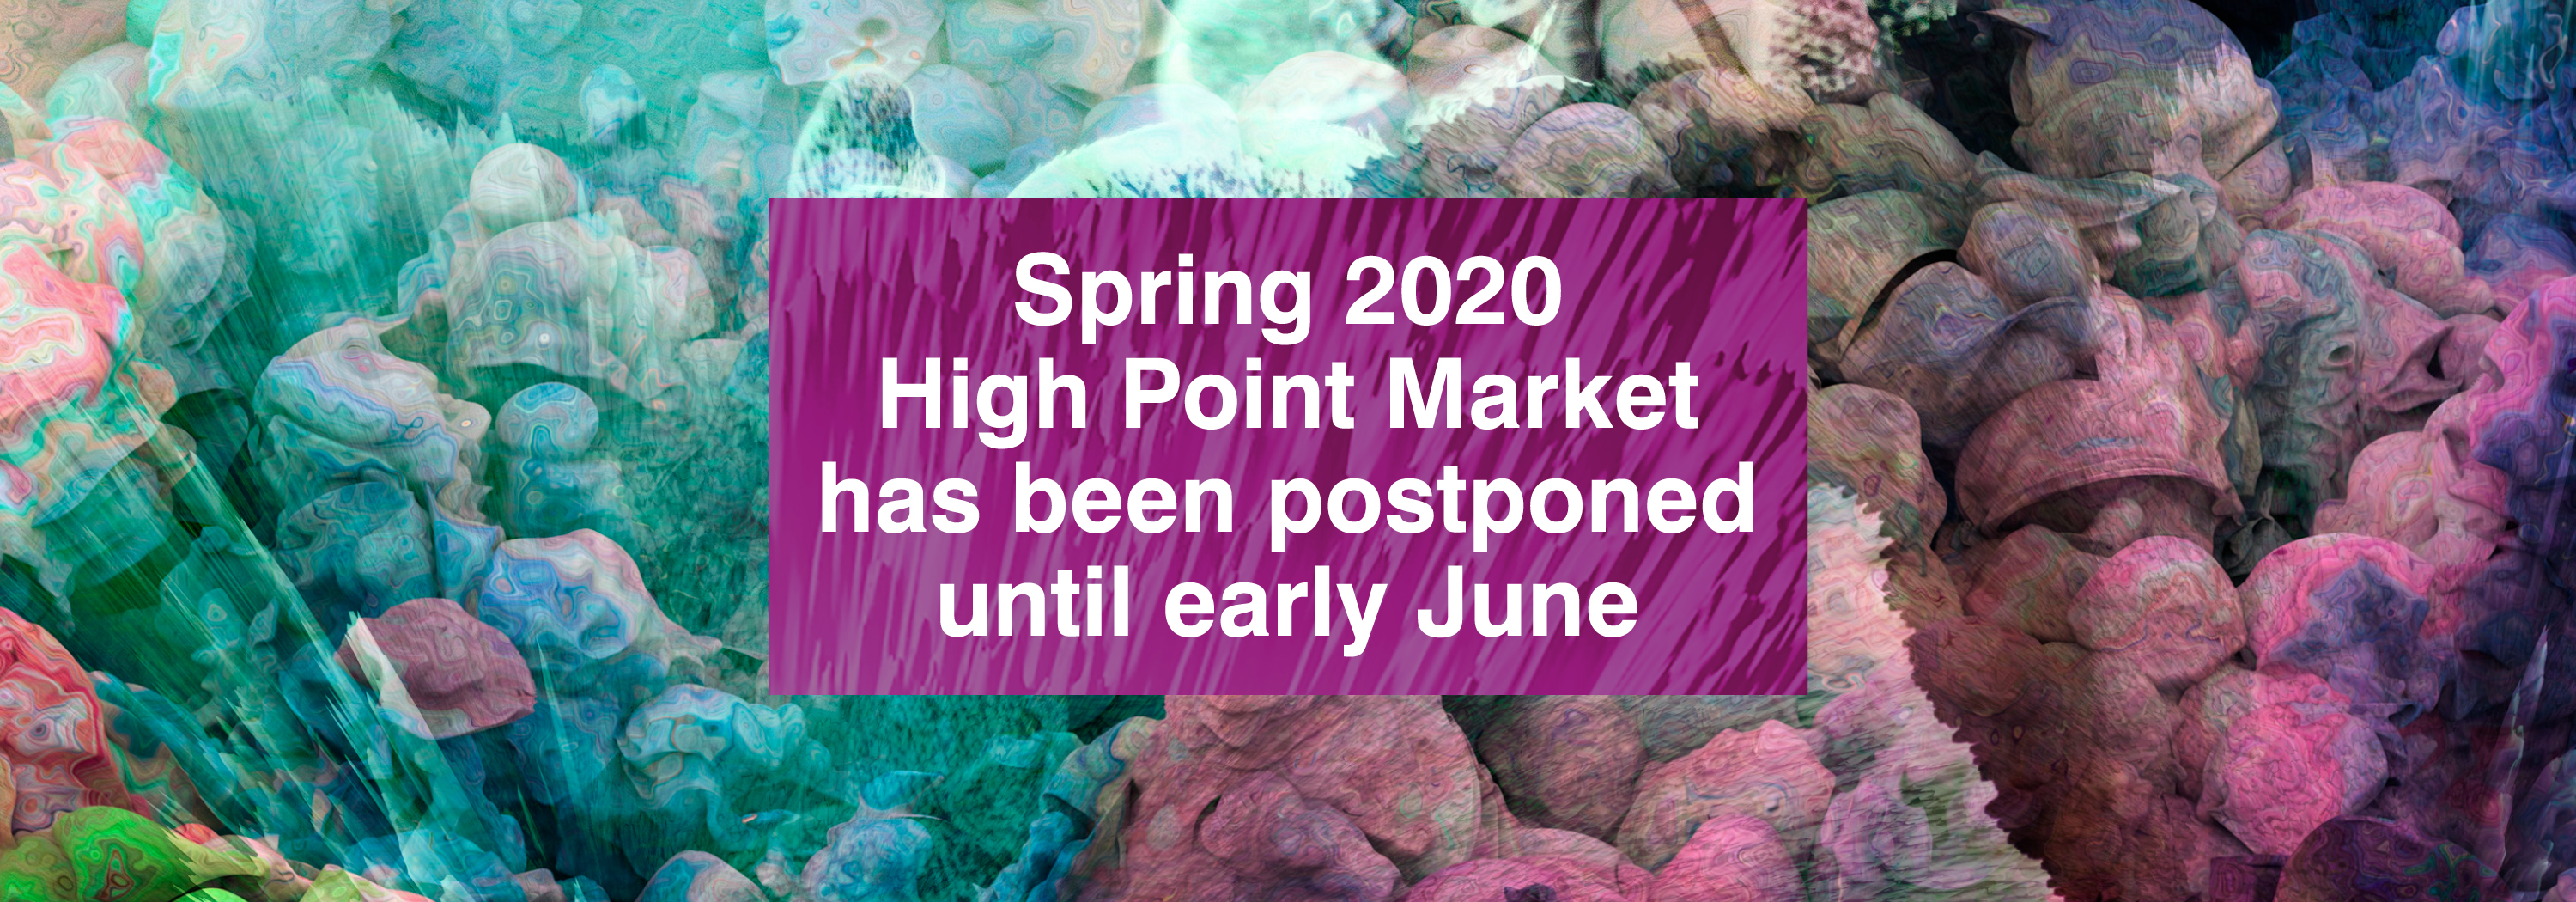 High Point Market baner